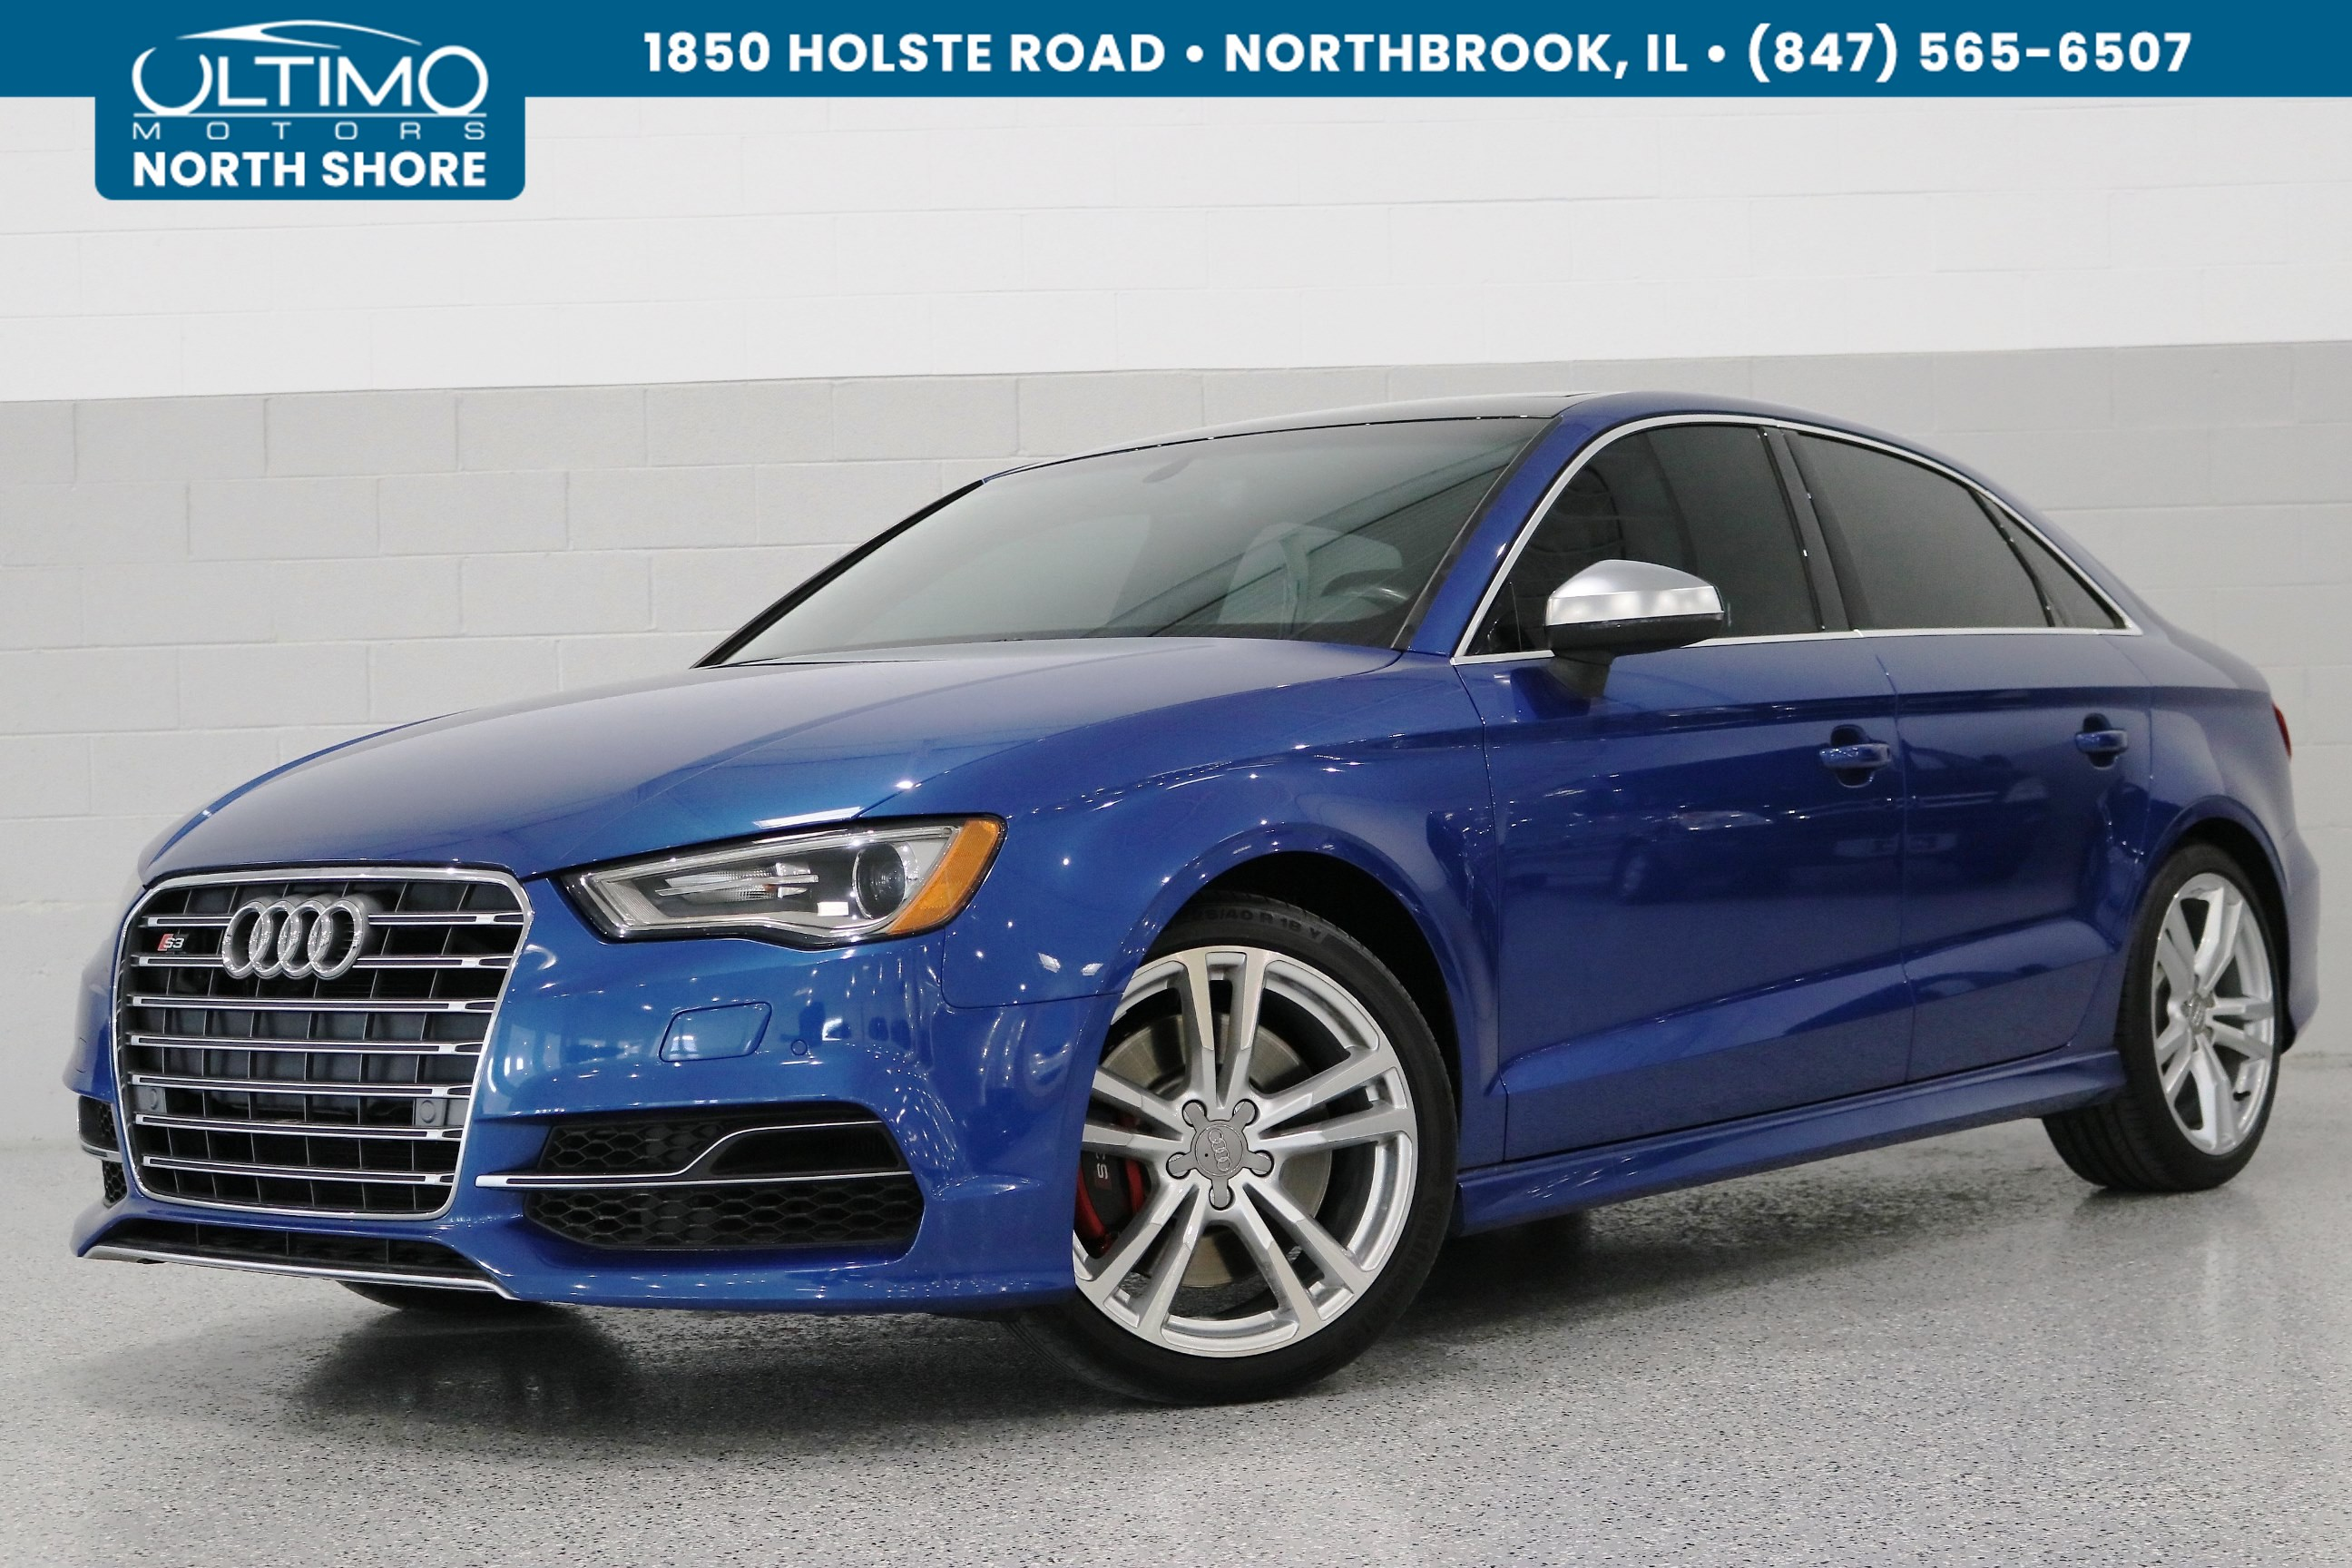 Pre-Owned 2016 Audi S3 Premium Plus, Technology Pack, Bang&Olufsen, Red Calipers.